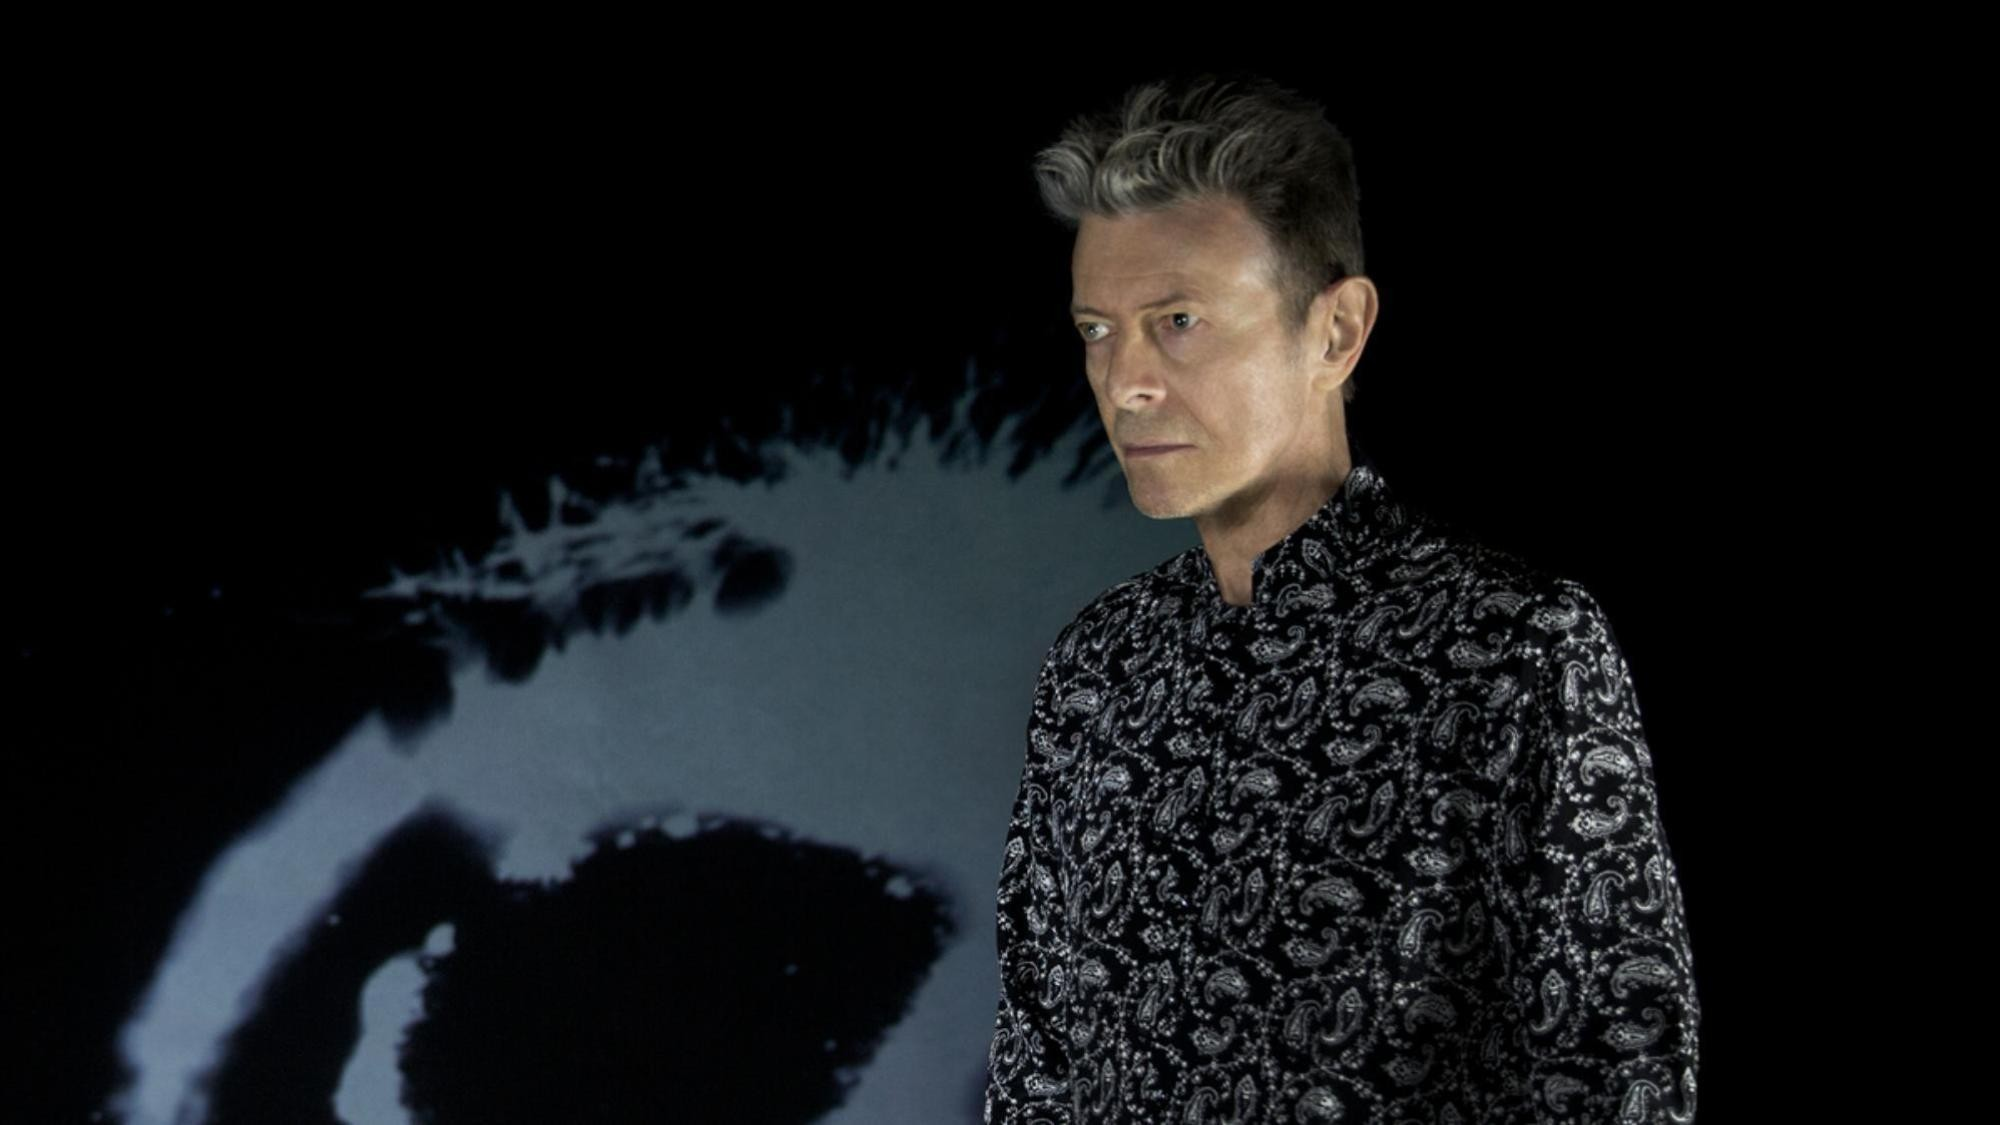 david bowie's new music video arrived on his 70th birthday